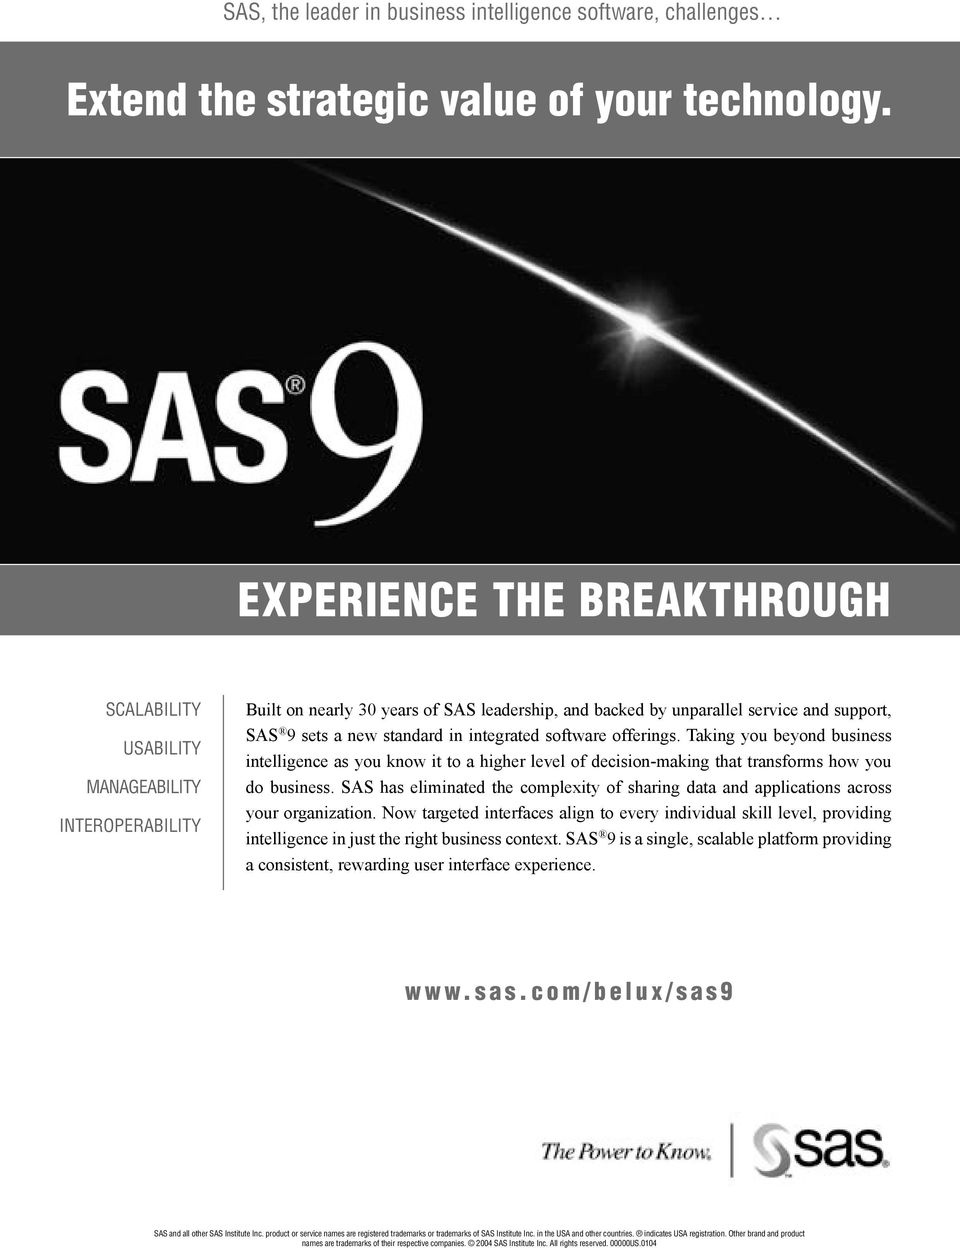 SAS has eliminated the complexity of sharing data and applications across your organization.